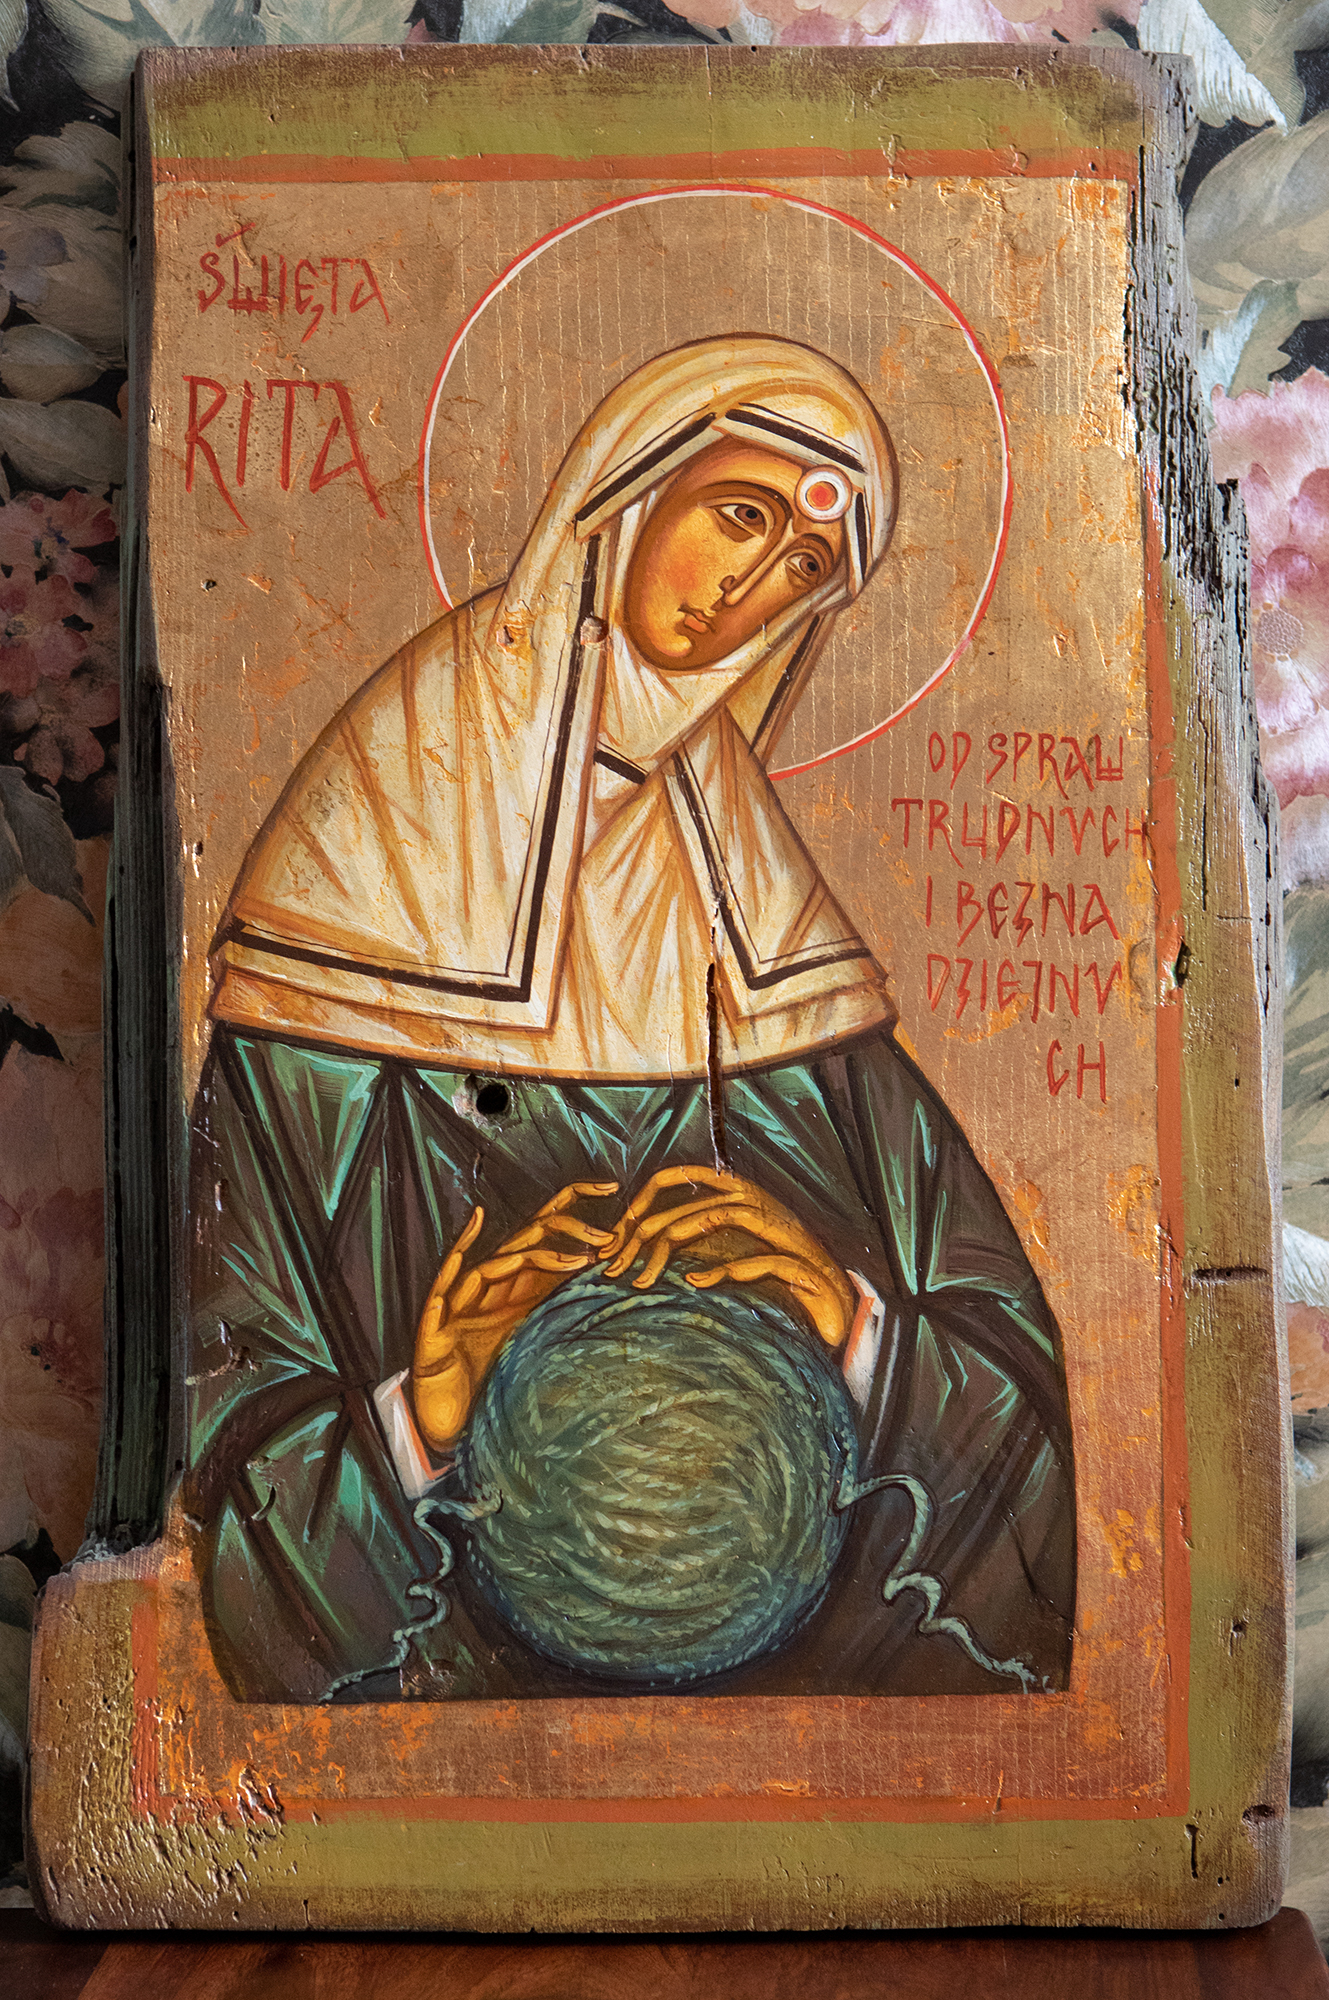 Saint Rita with the attribute of thorn (from the Savior's crown of thorns), embedded deeply in her forehead. The Saint is untangling the 'Gordian knot' in the shape of sphere.